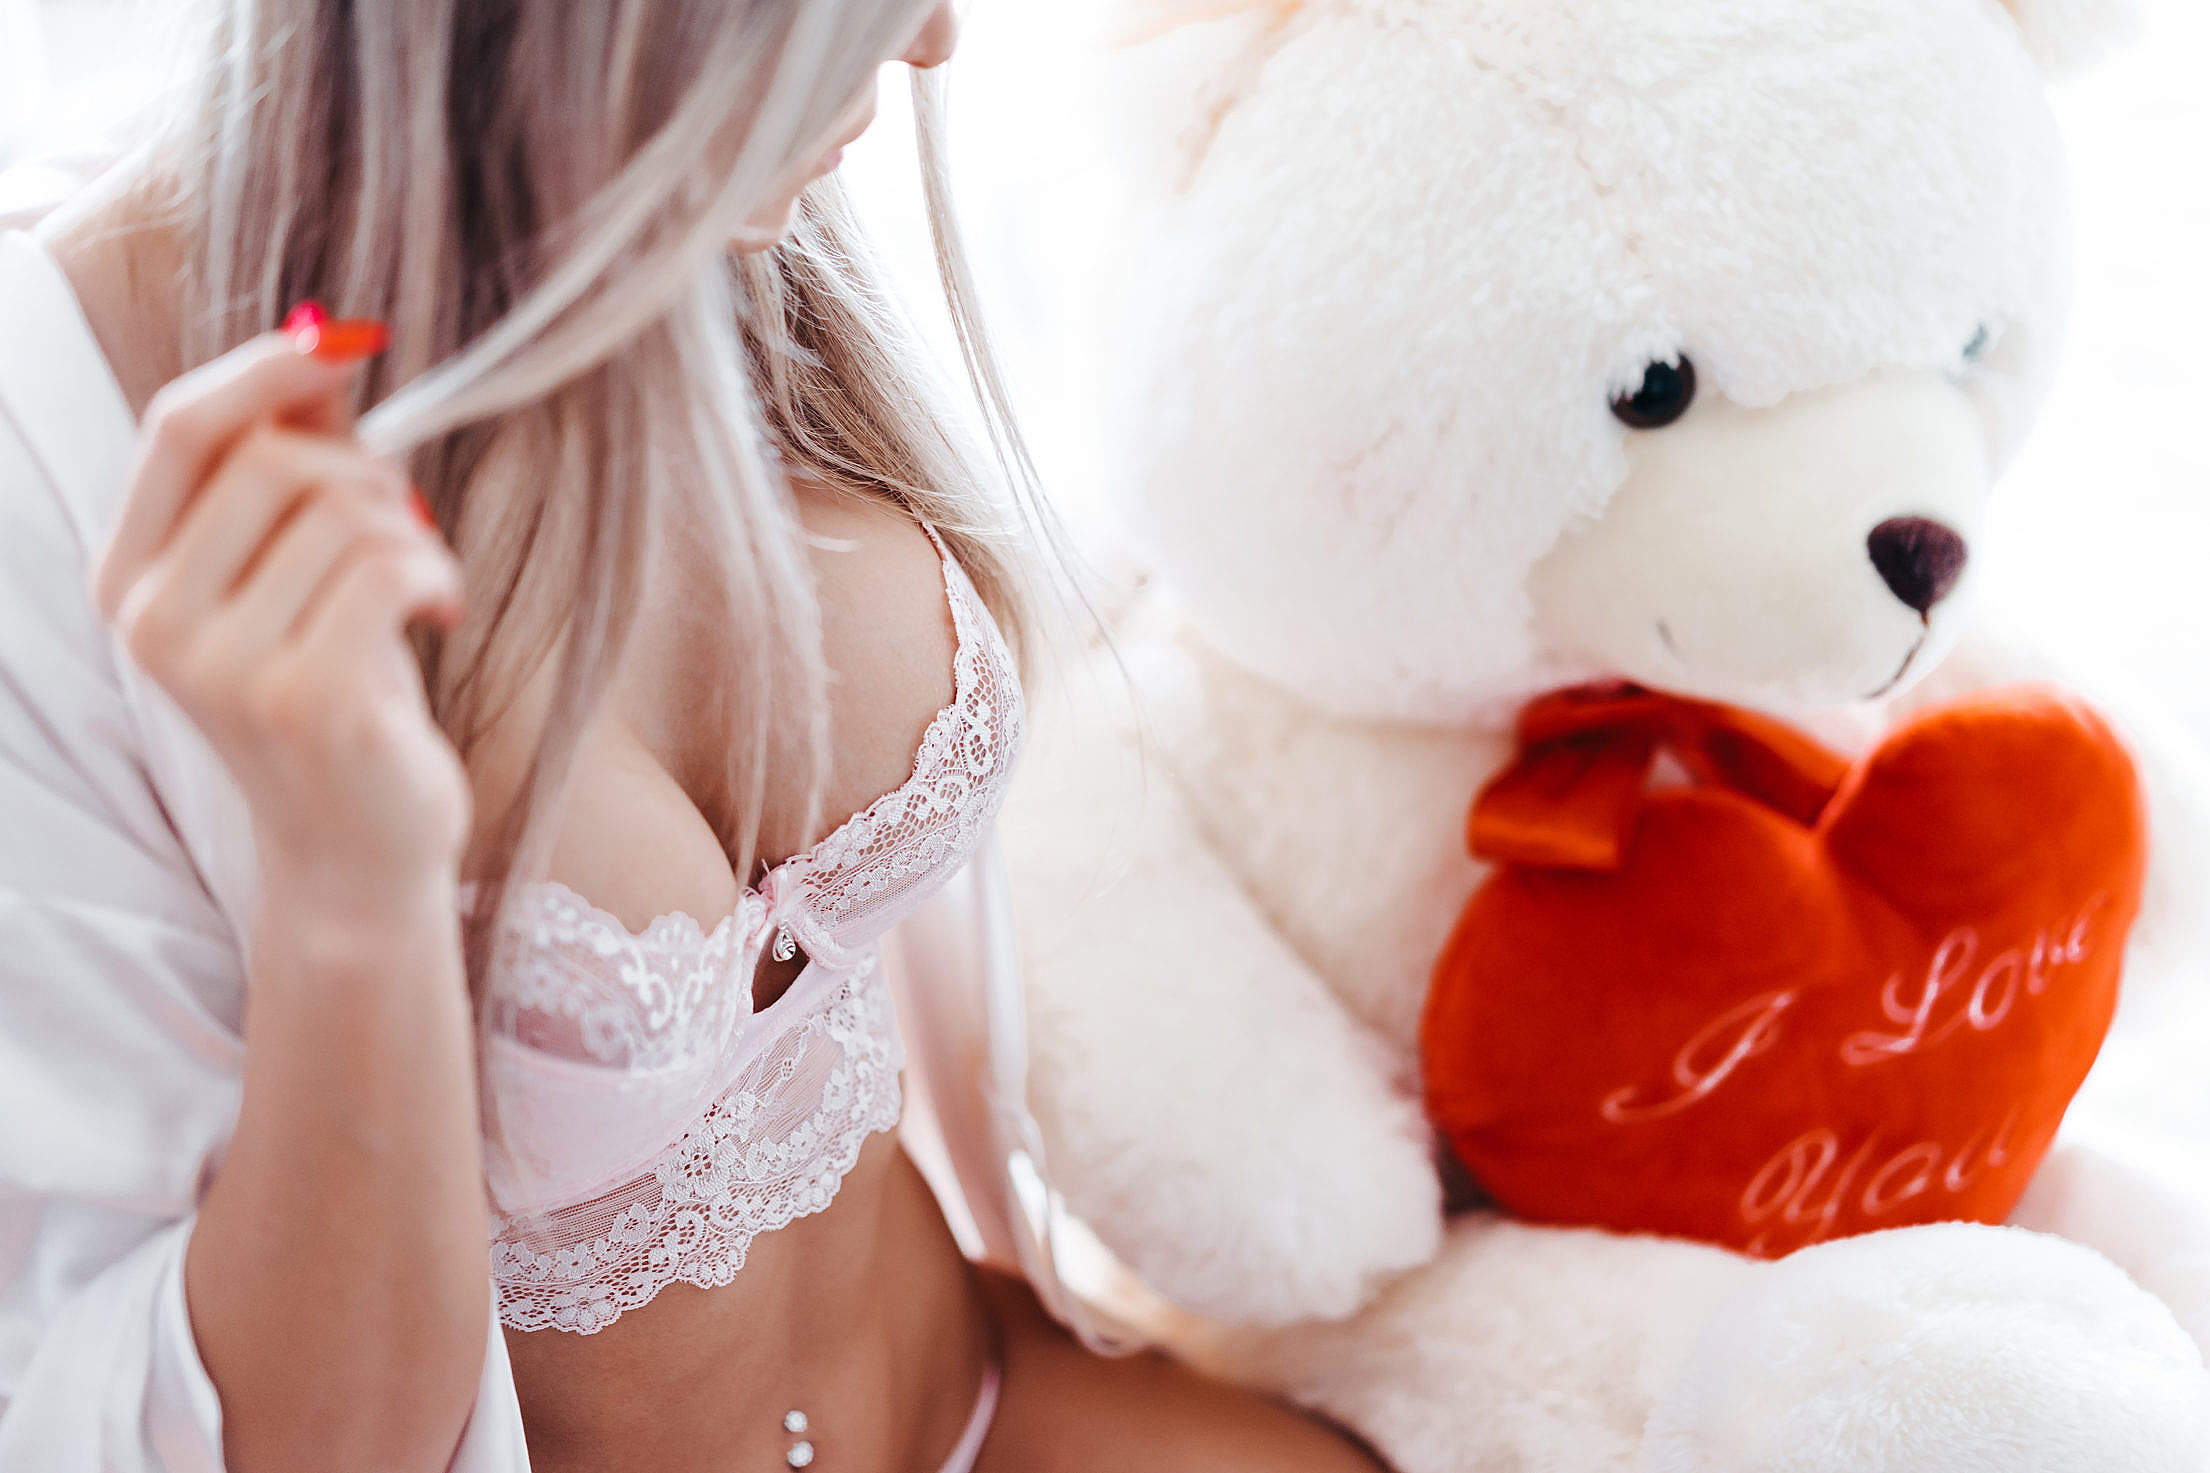 Woman in Pink Lace Lingerie with Big White Teddy Bear Free Stock Photo